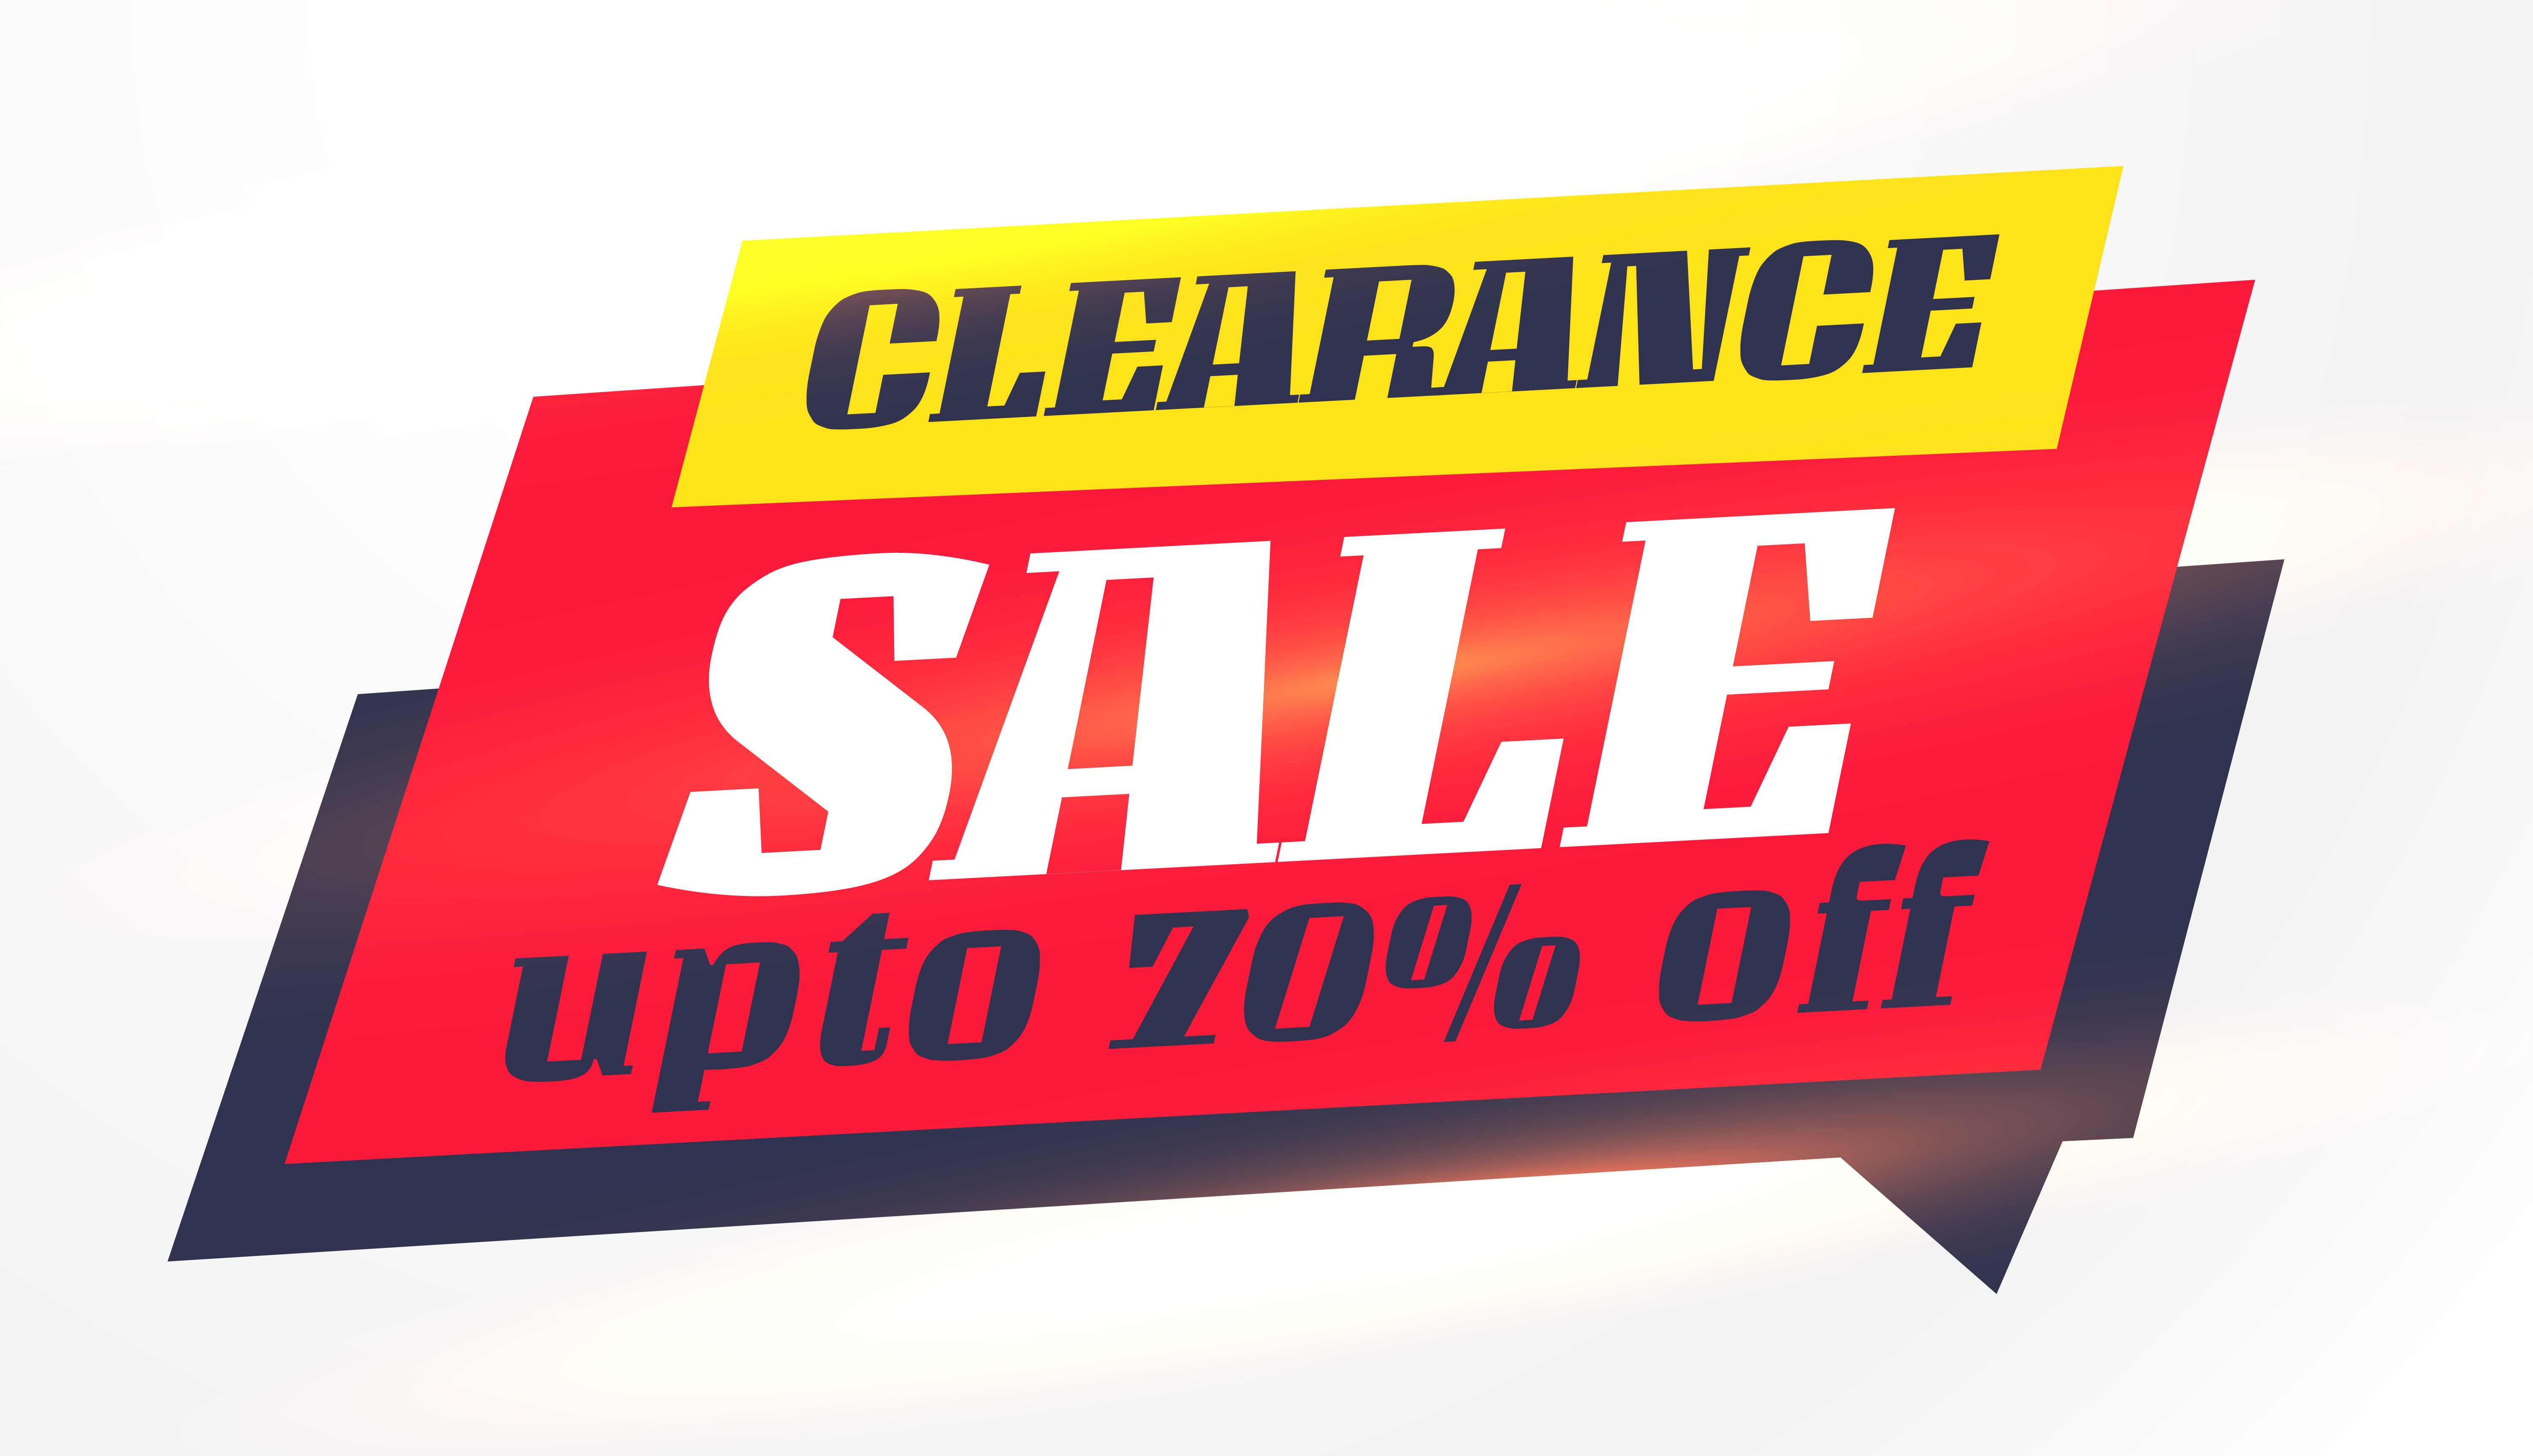 Sale And Discount Voucher Design In Chat Bubble Style  Discount Voucher Design